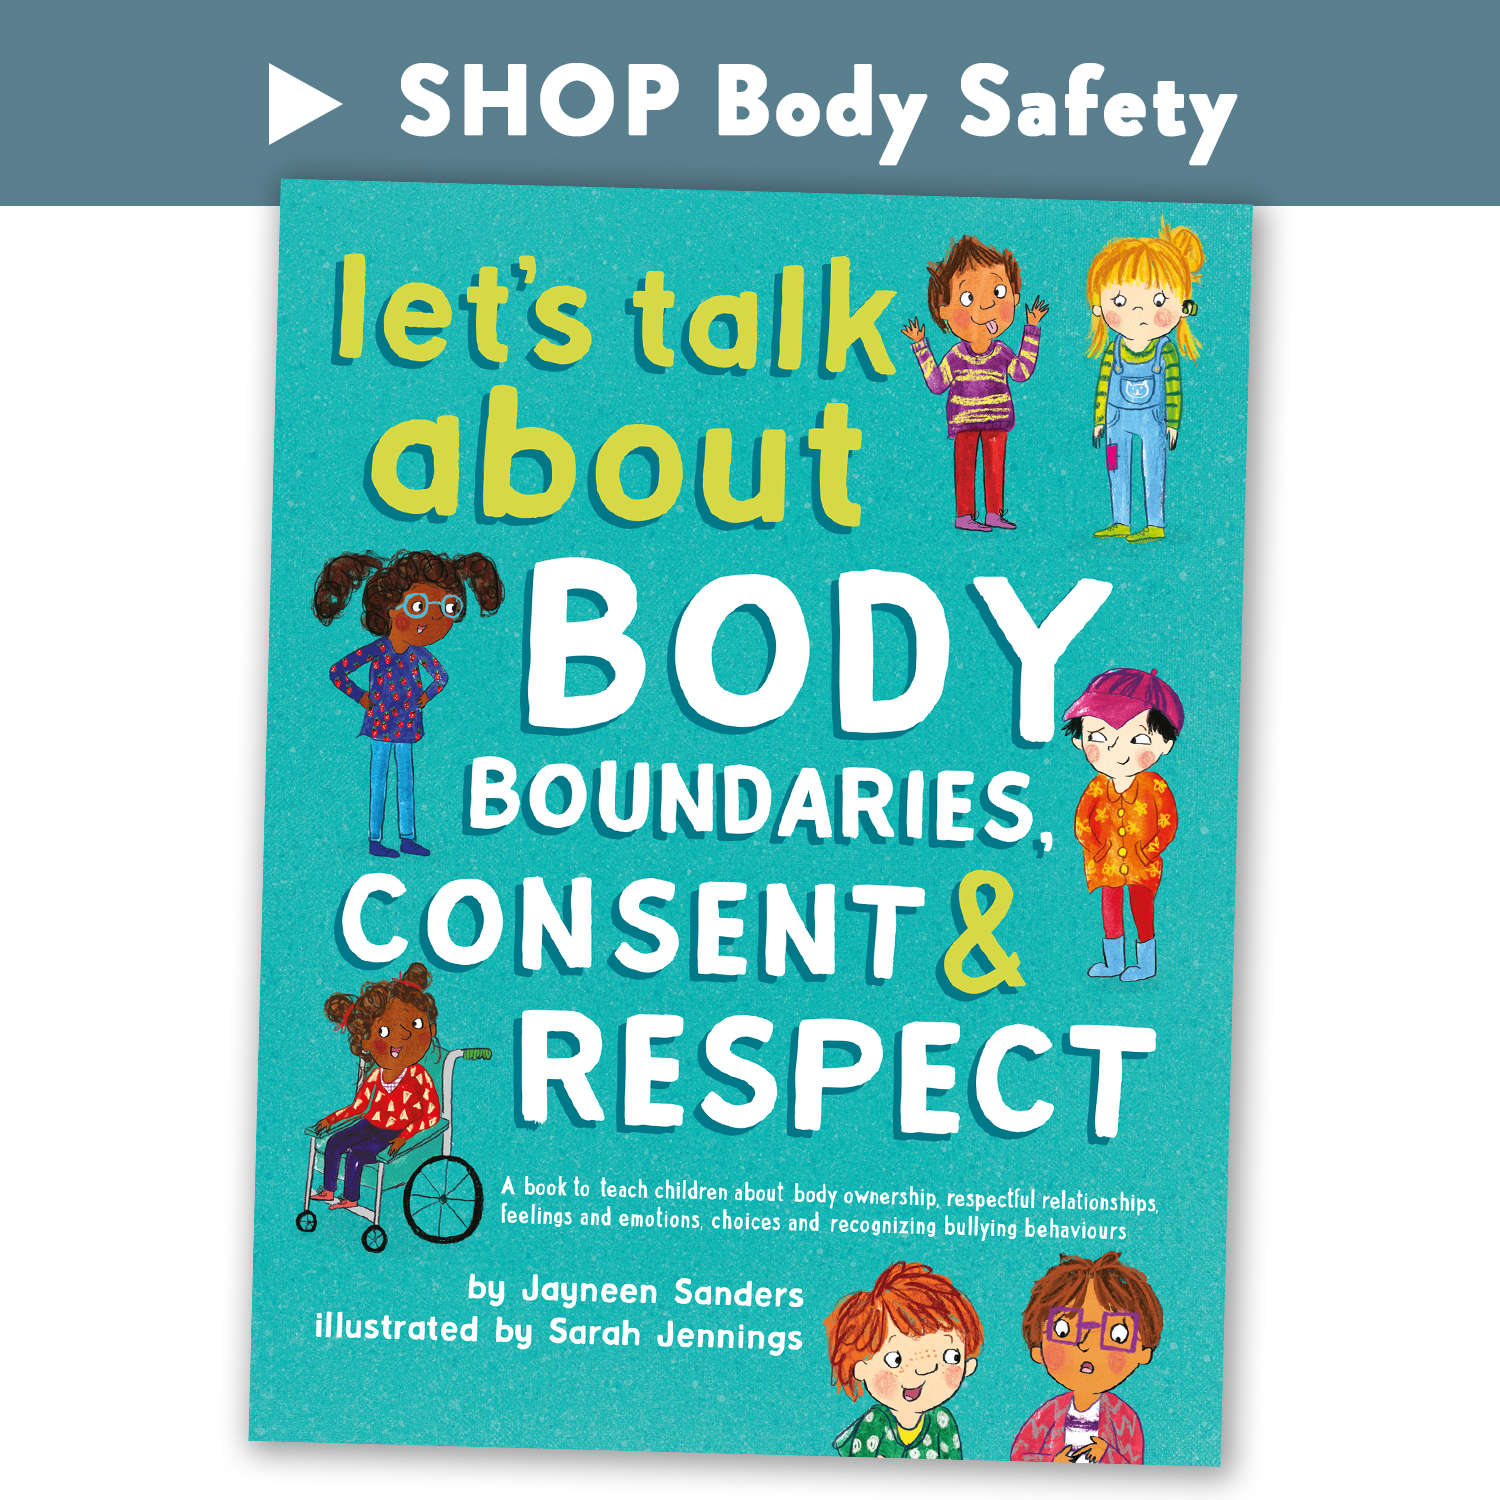 E2E_shop_BodySafety_2-LTA.jpg